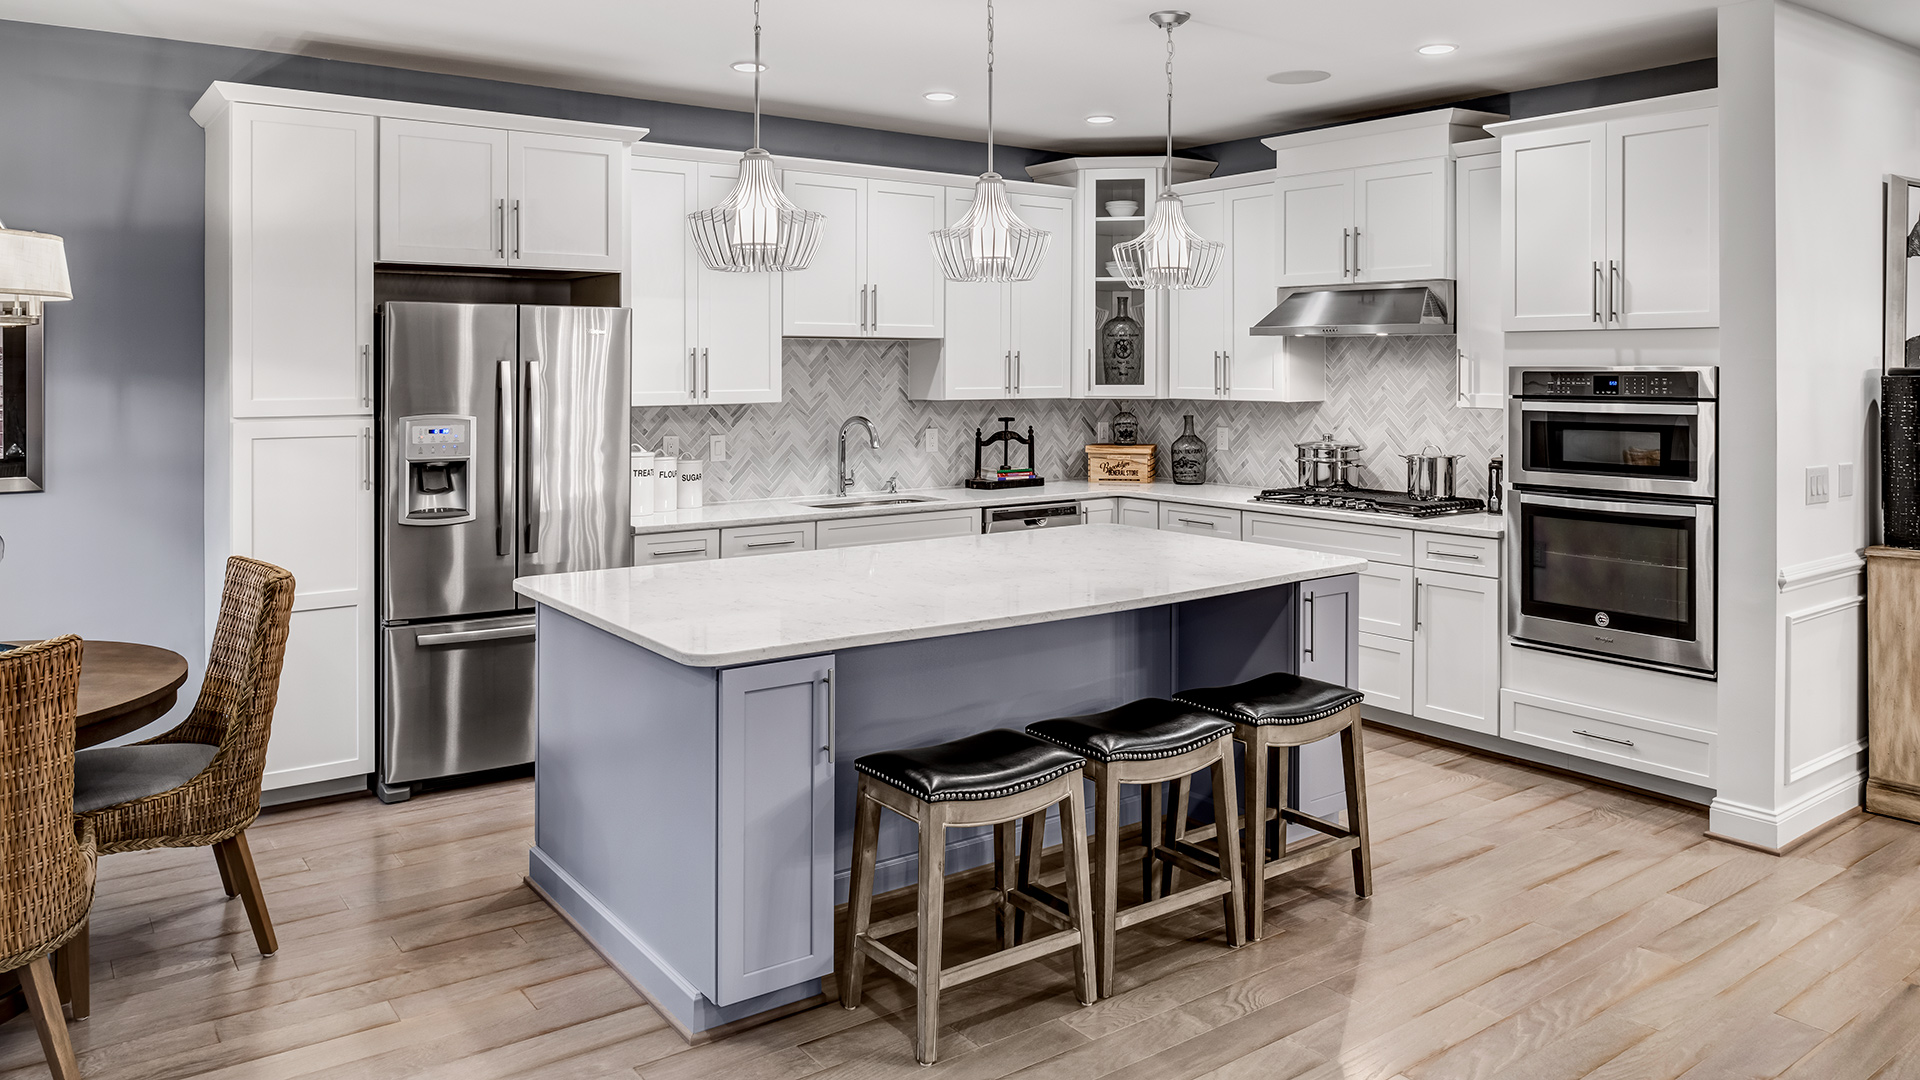 Gourmet kitchen with center island perfect for entertaining